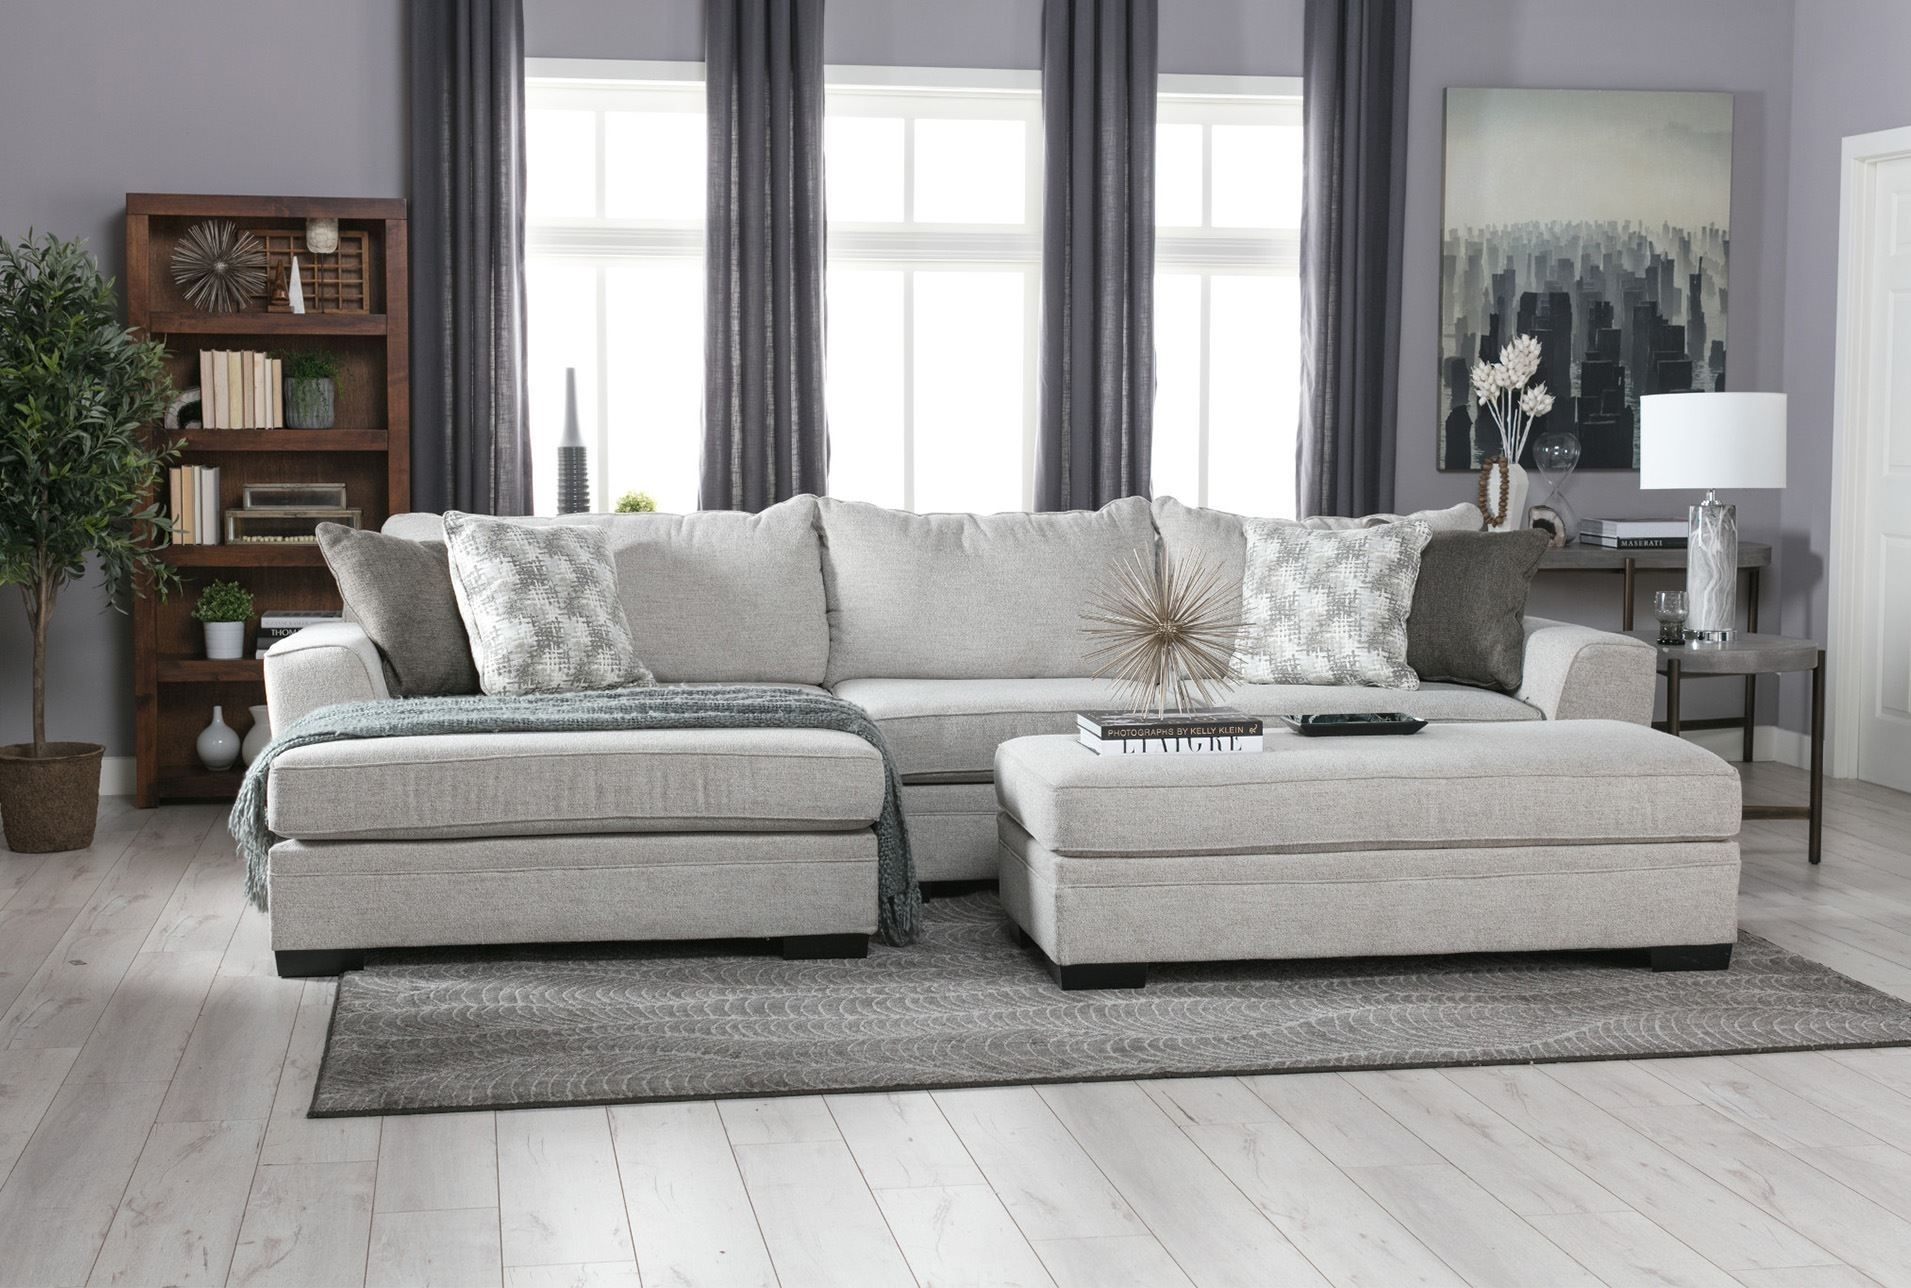 Delano 2 Piece Sectional W/laf Oversized Chaise | Sylvia Son intended for Arrowmask 2 Piece Sectionals With Laf Chaise (Image 7 of 30)